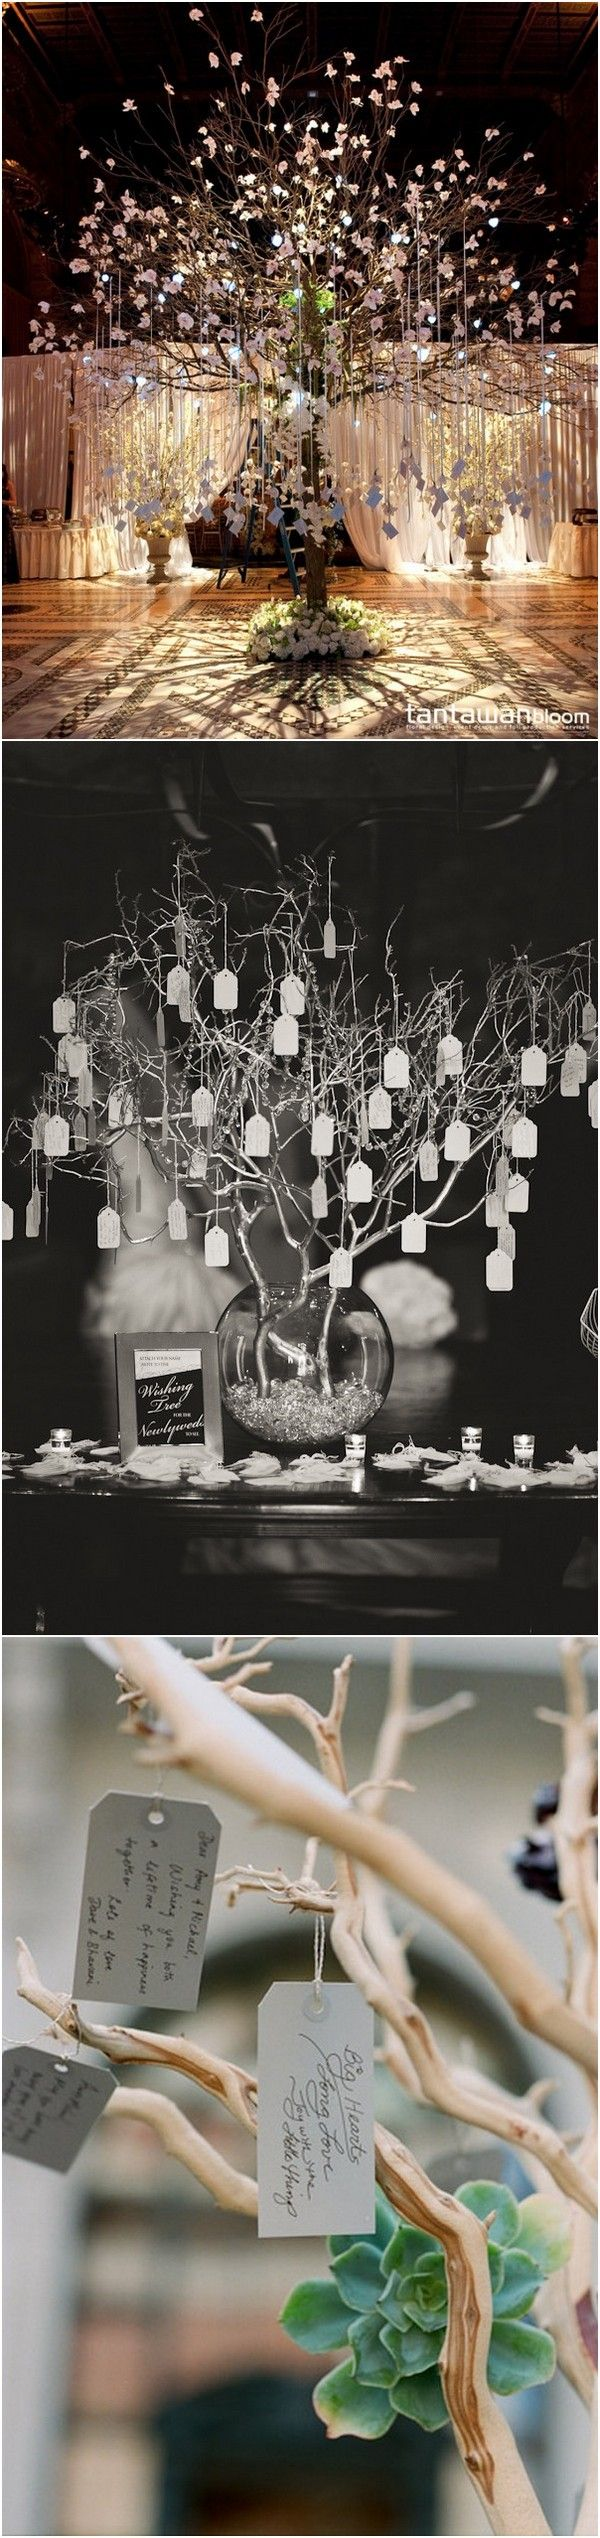 wedding wishing tree decoration ideas